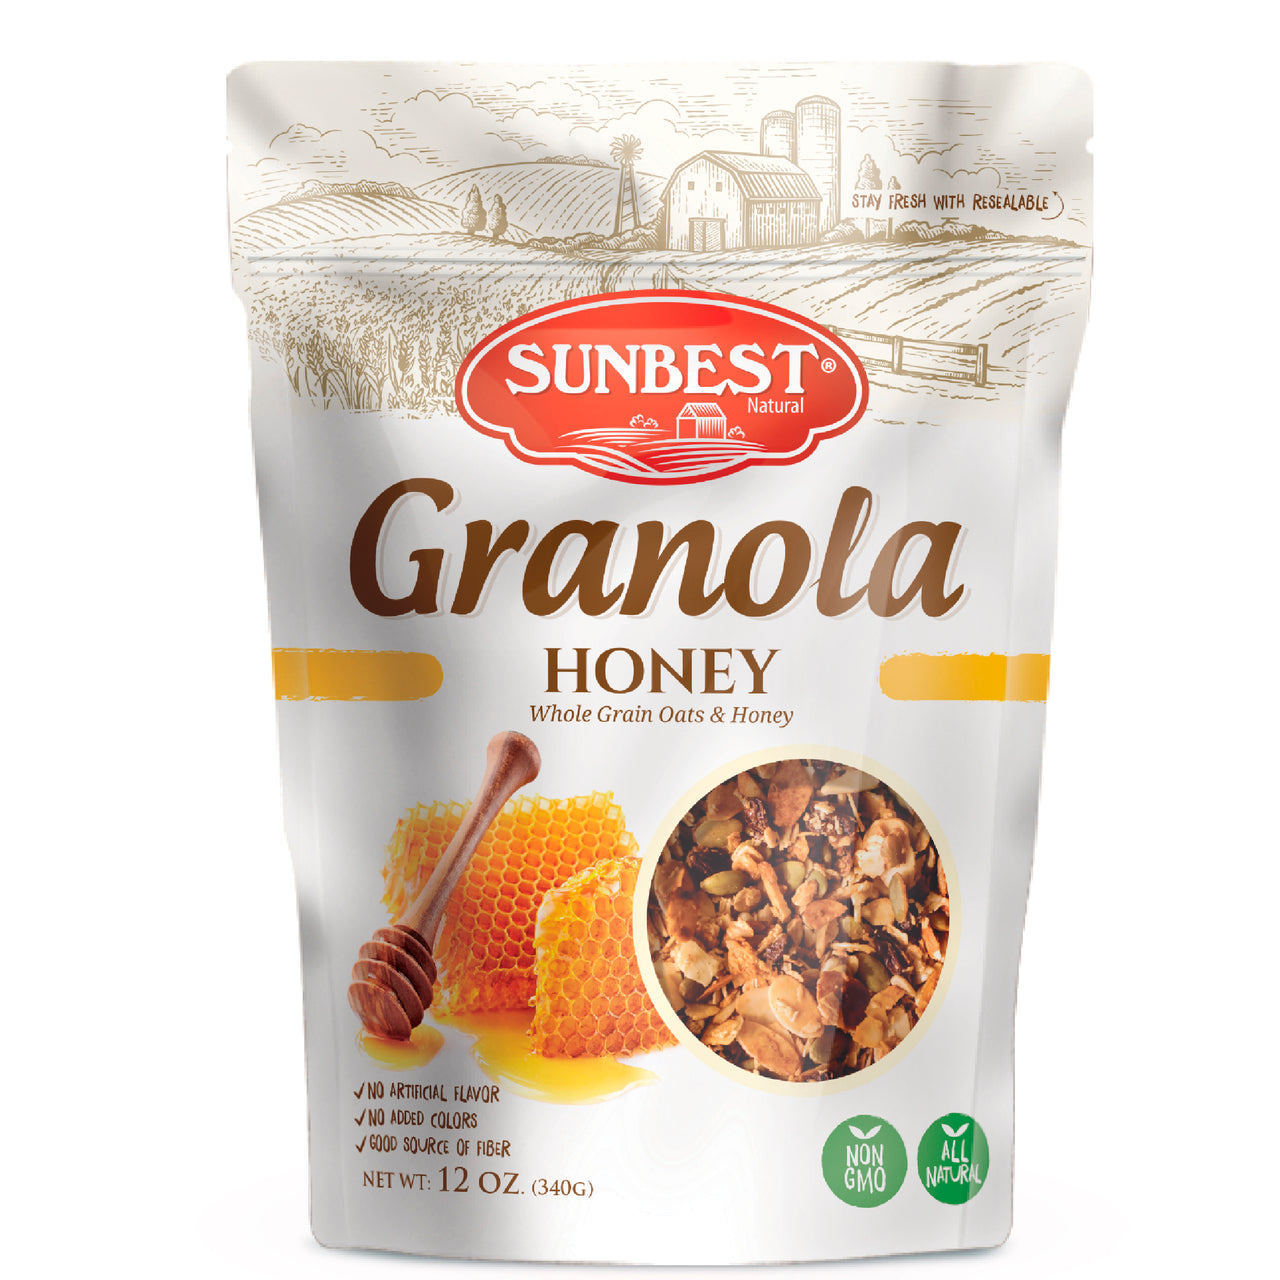 Sunbest Natural Honey Granola 12oz in Resealable Bag